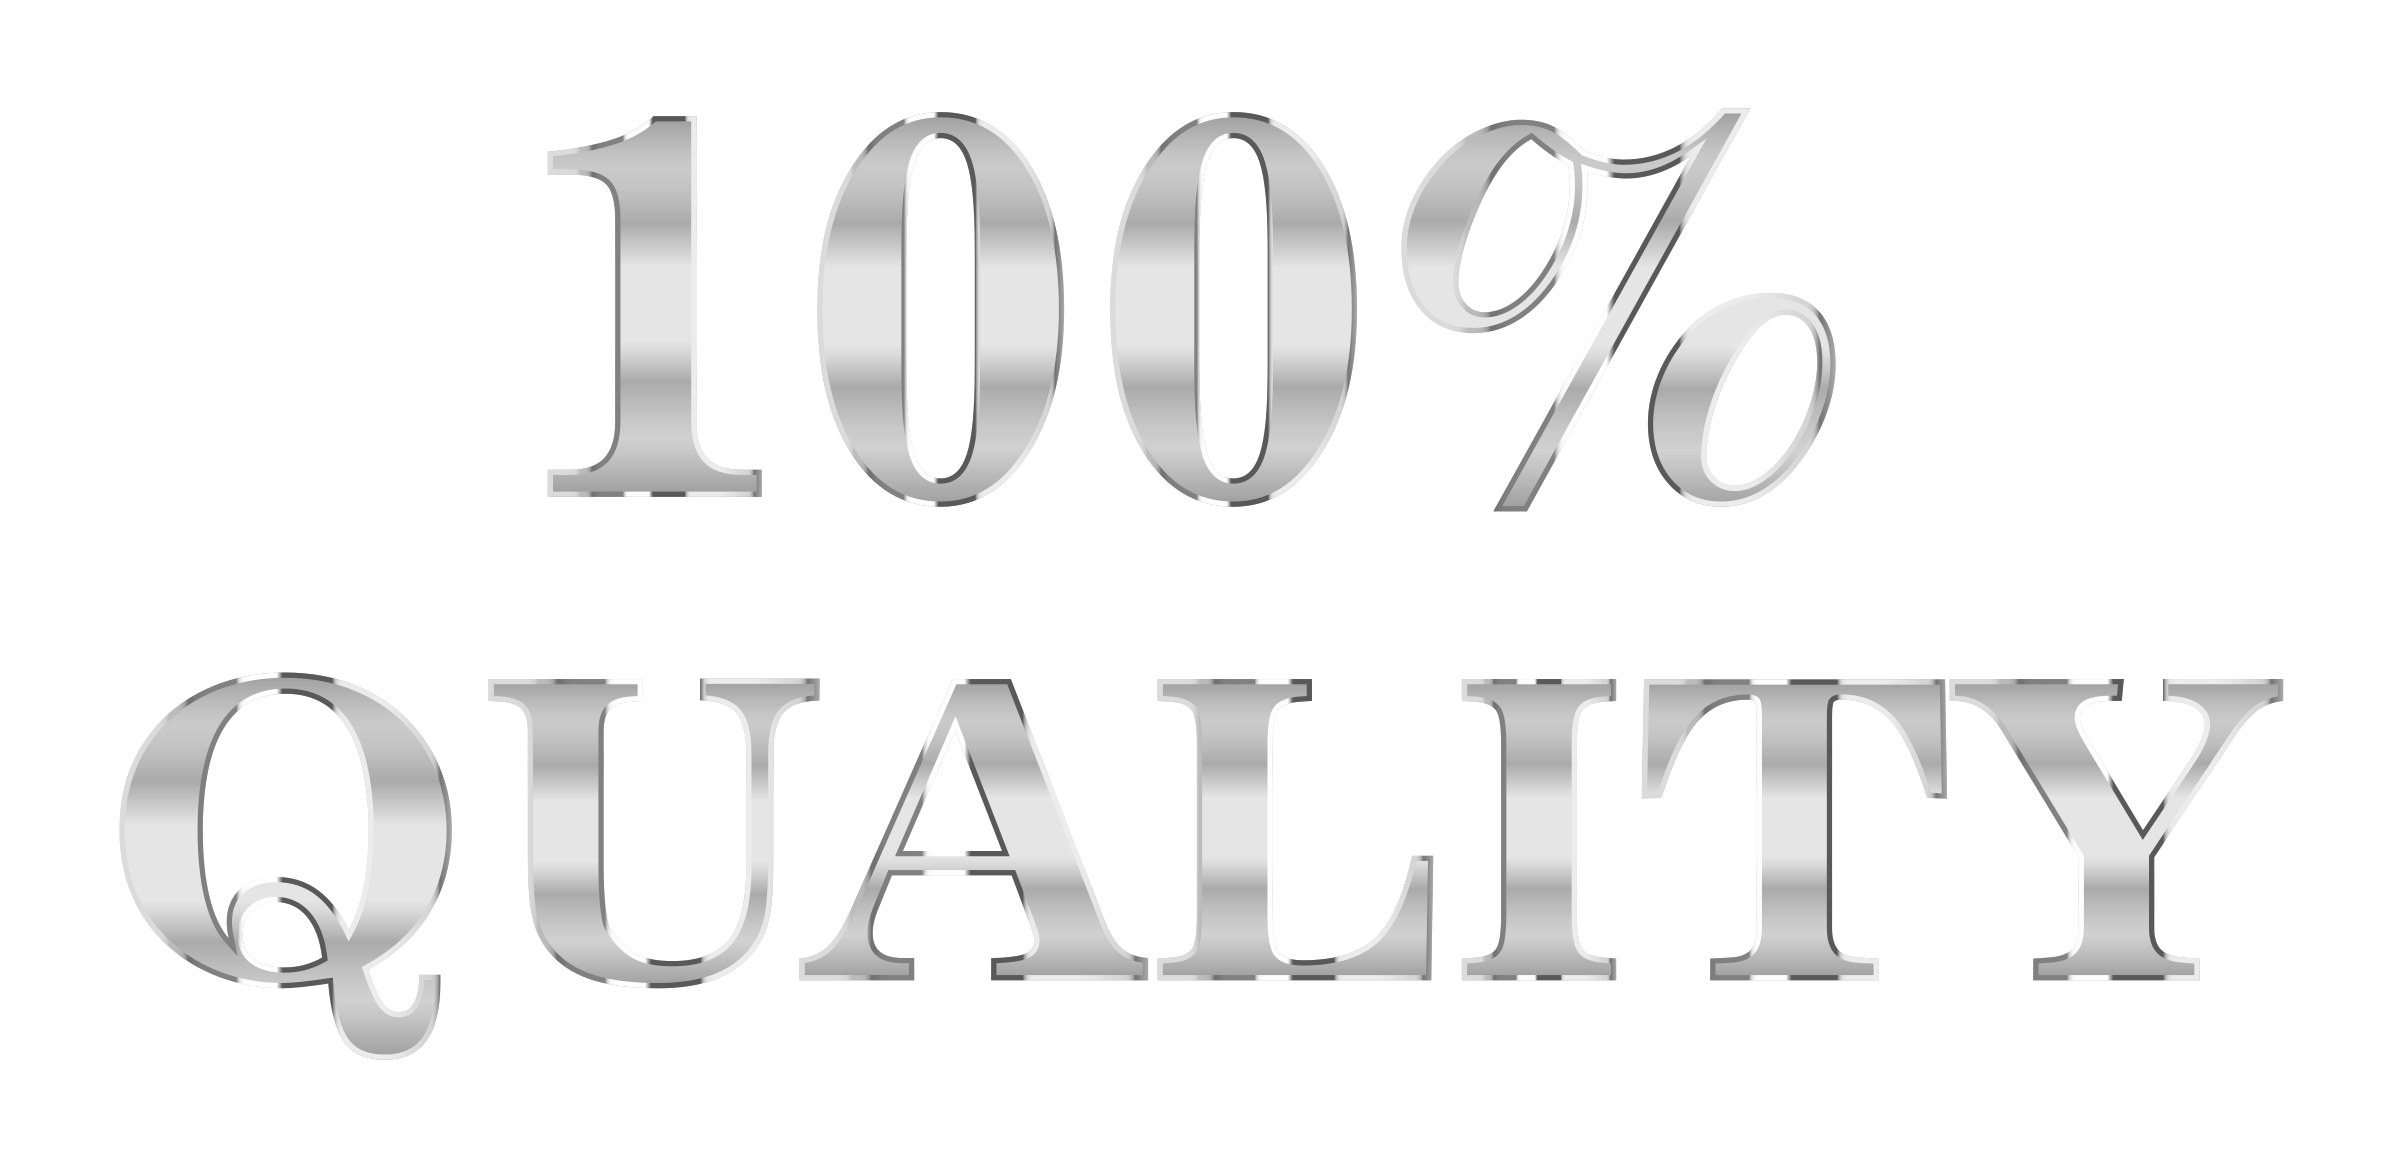 100 Percent Quality Typography Steel No Background by GDJ